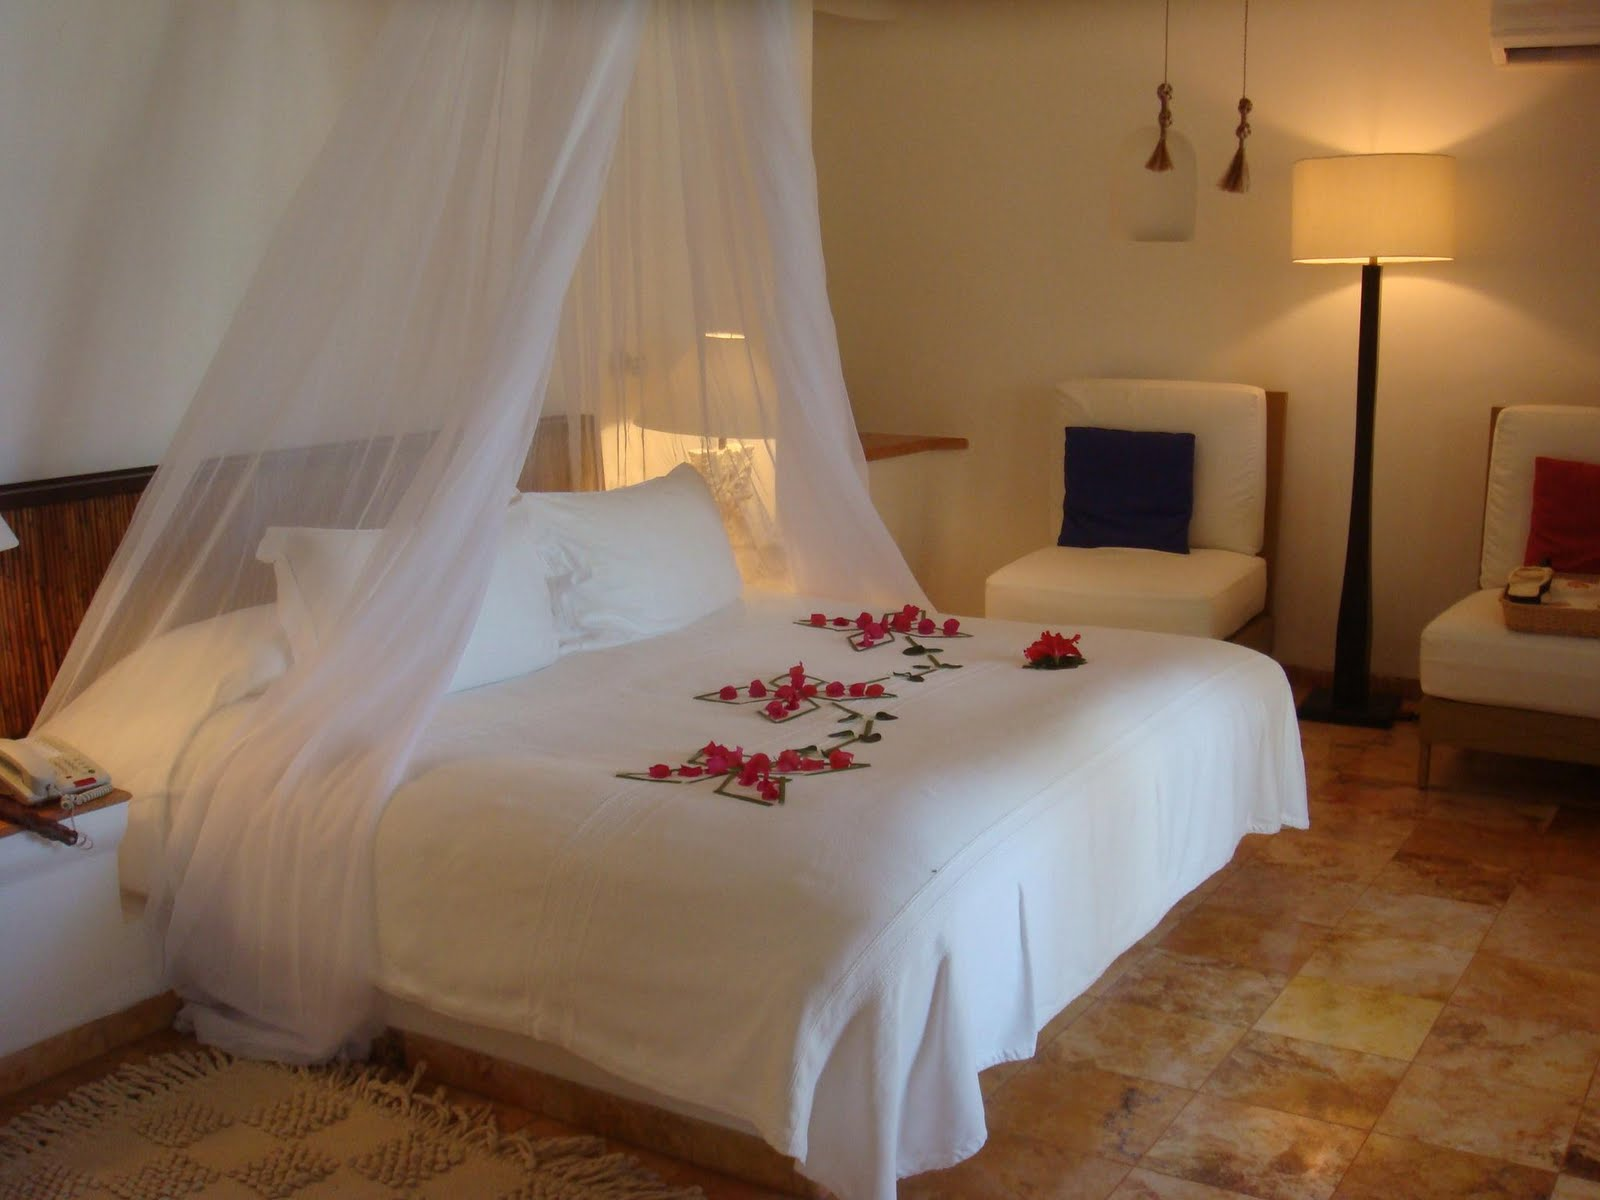 Romantic Honeymoon : ... honeymoon suite sign romantic honeymoon suite romantic honeymoon